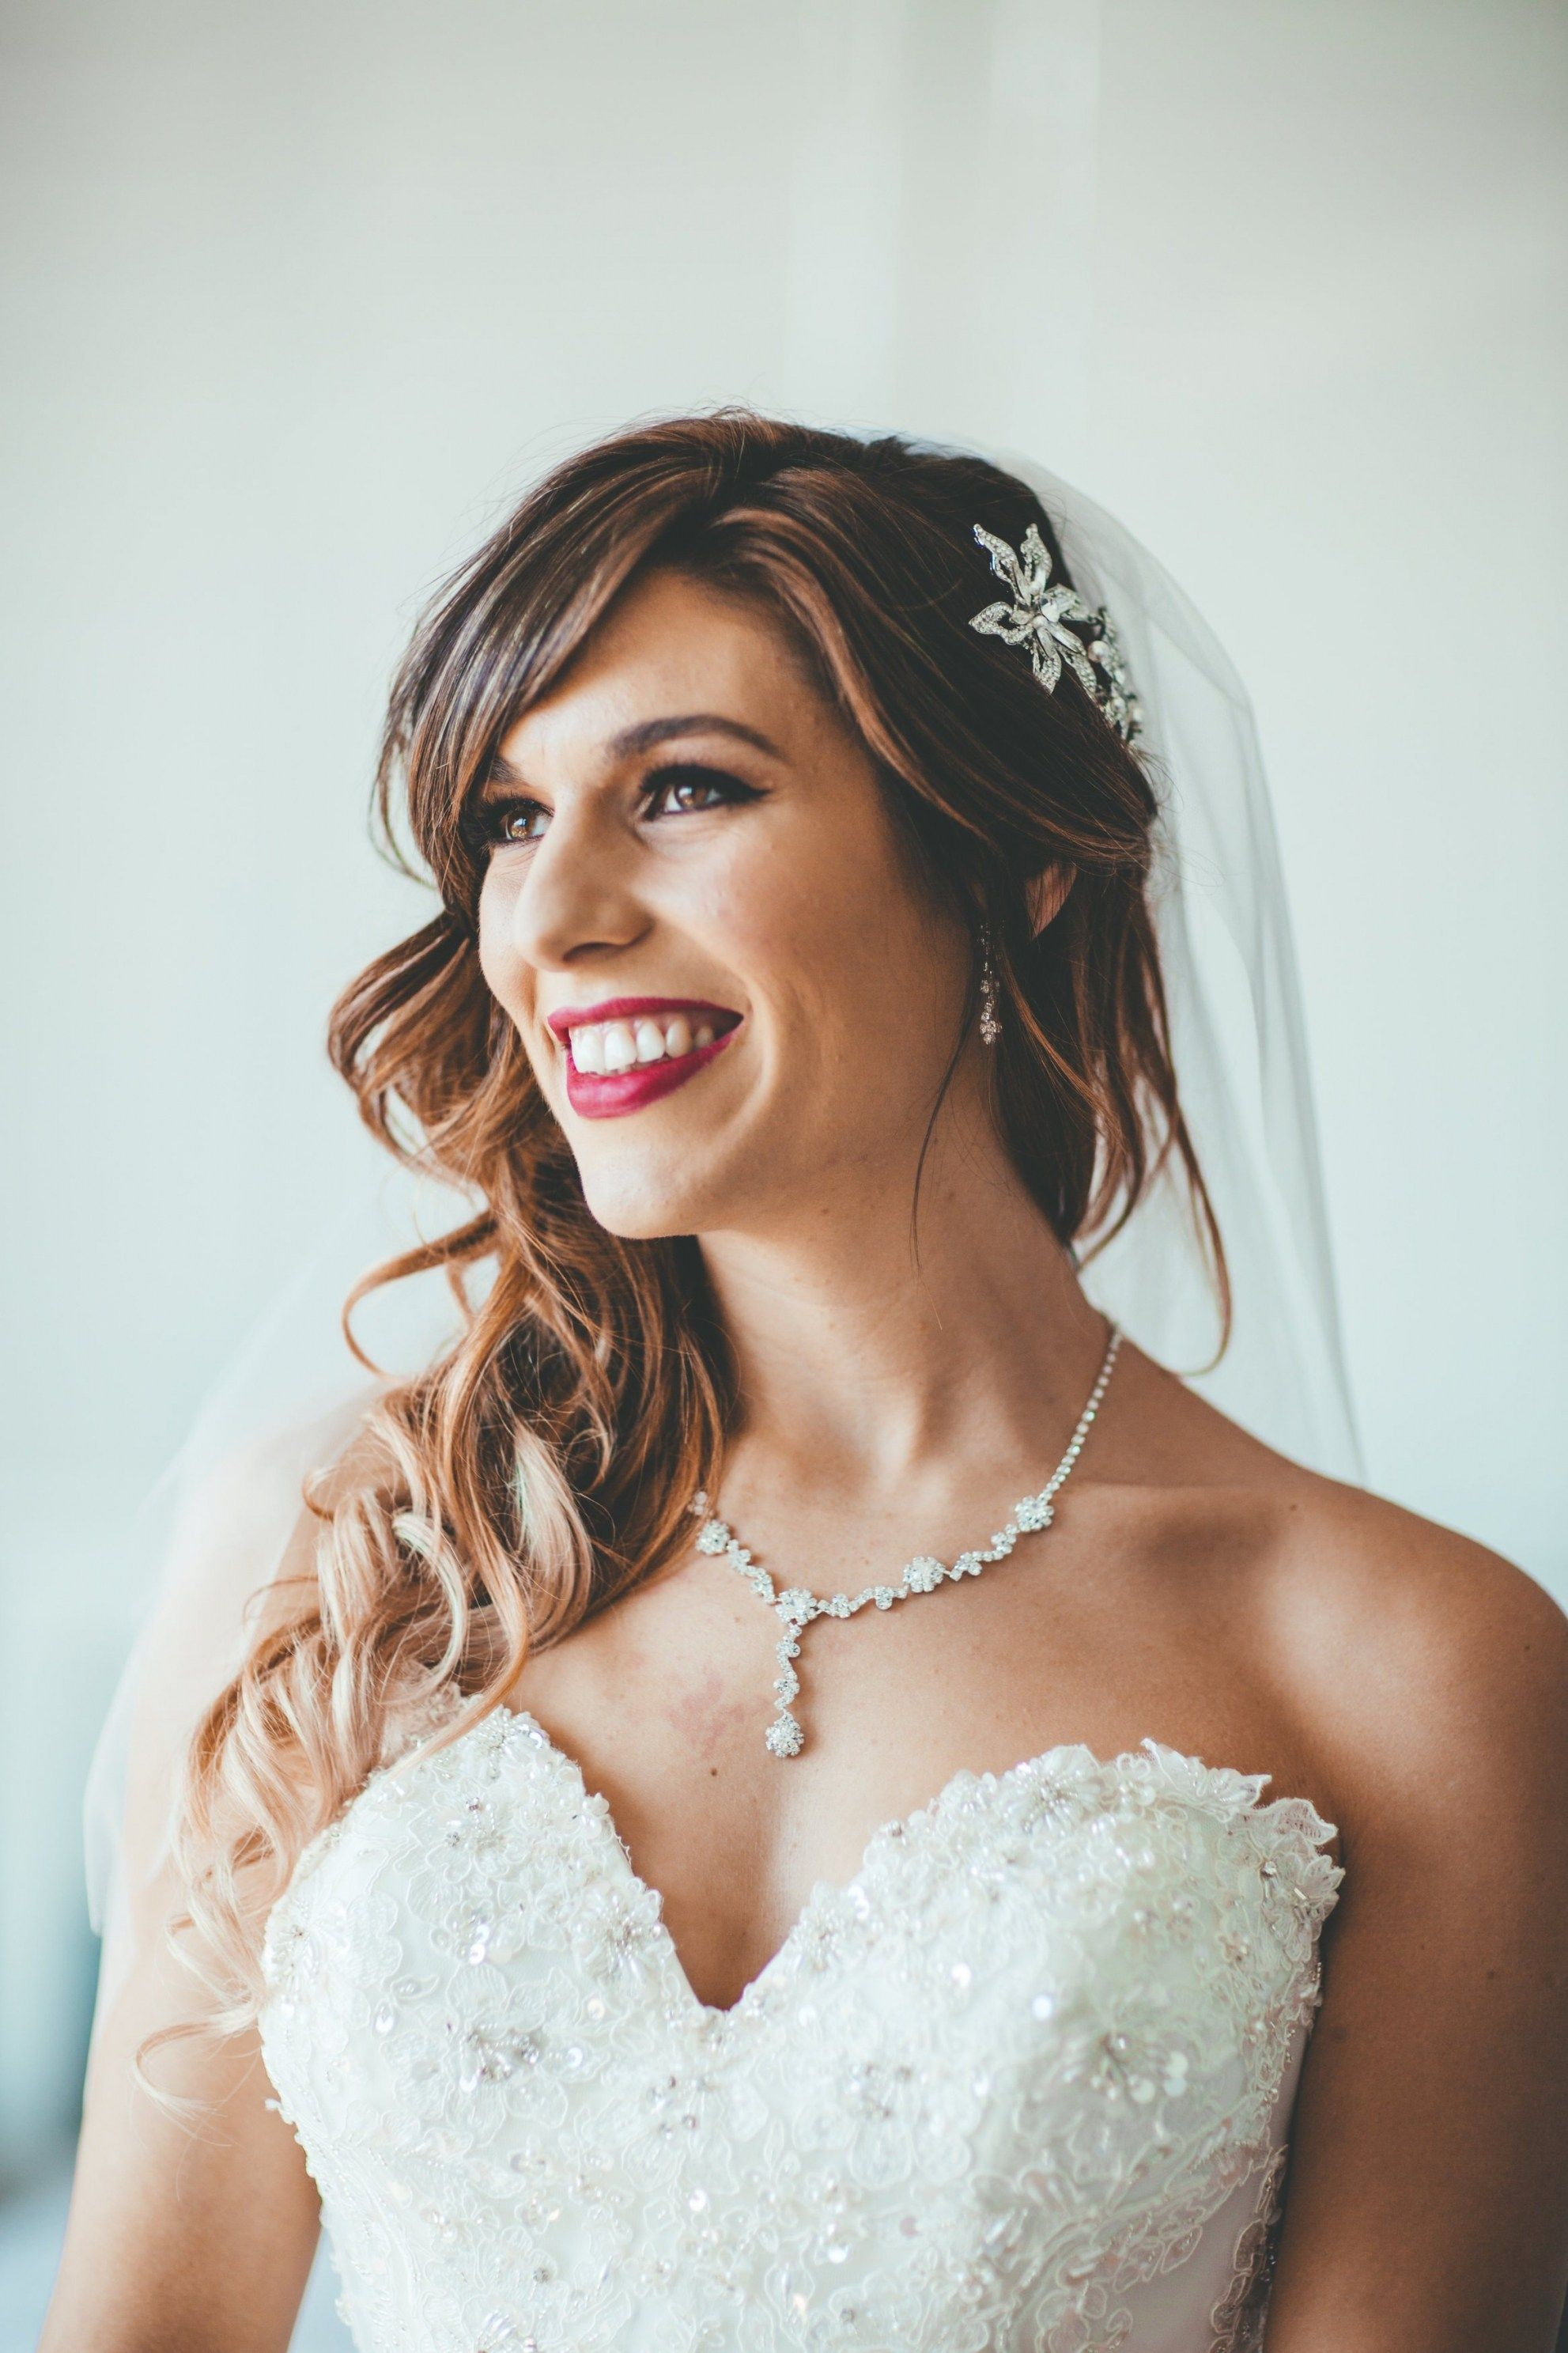 wedding hair and makeup melbourne mobile | hairstyles ideas